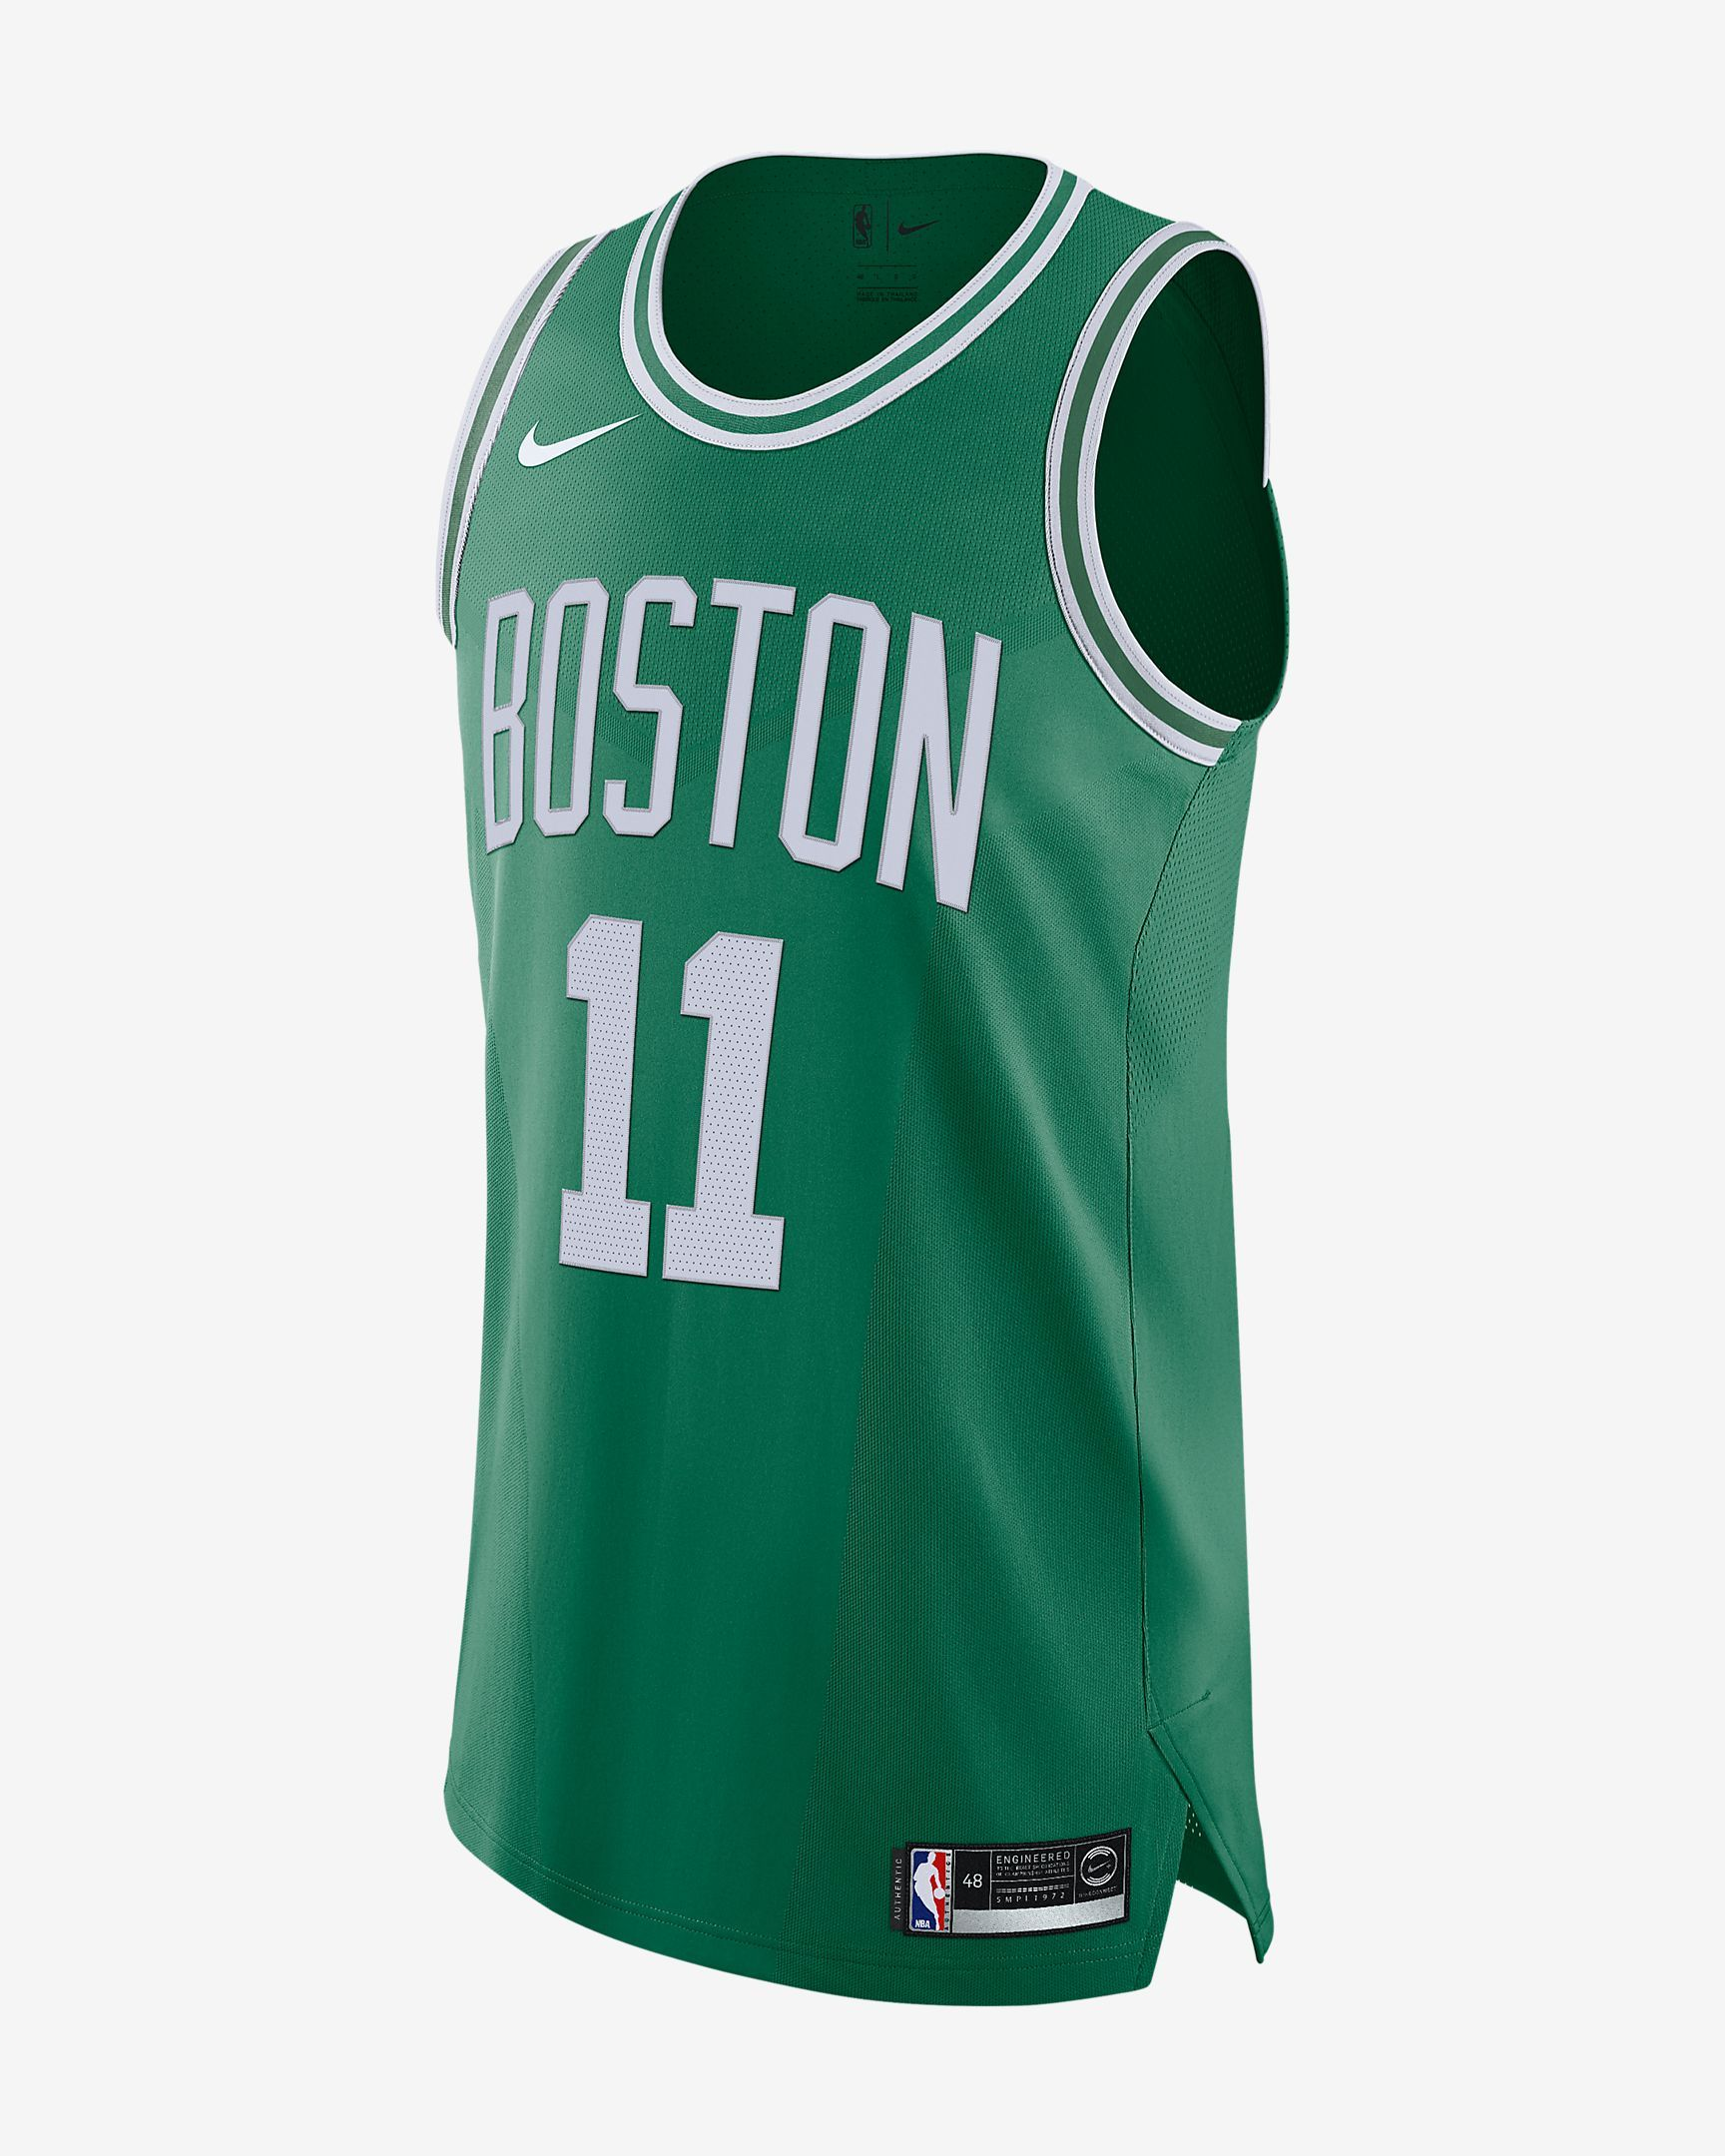 reputable site b301d 3b1cc Kyrie Irving Icon Edition Authentic Jersey (Boston Celtics ...